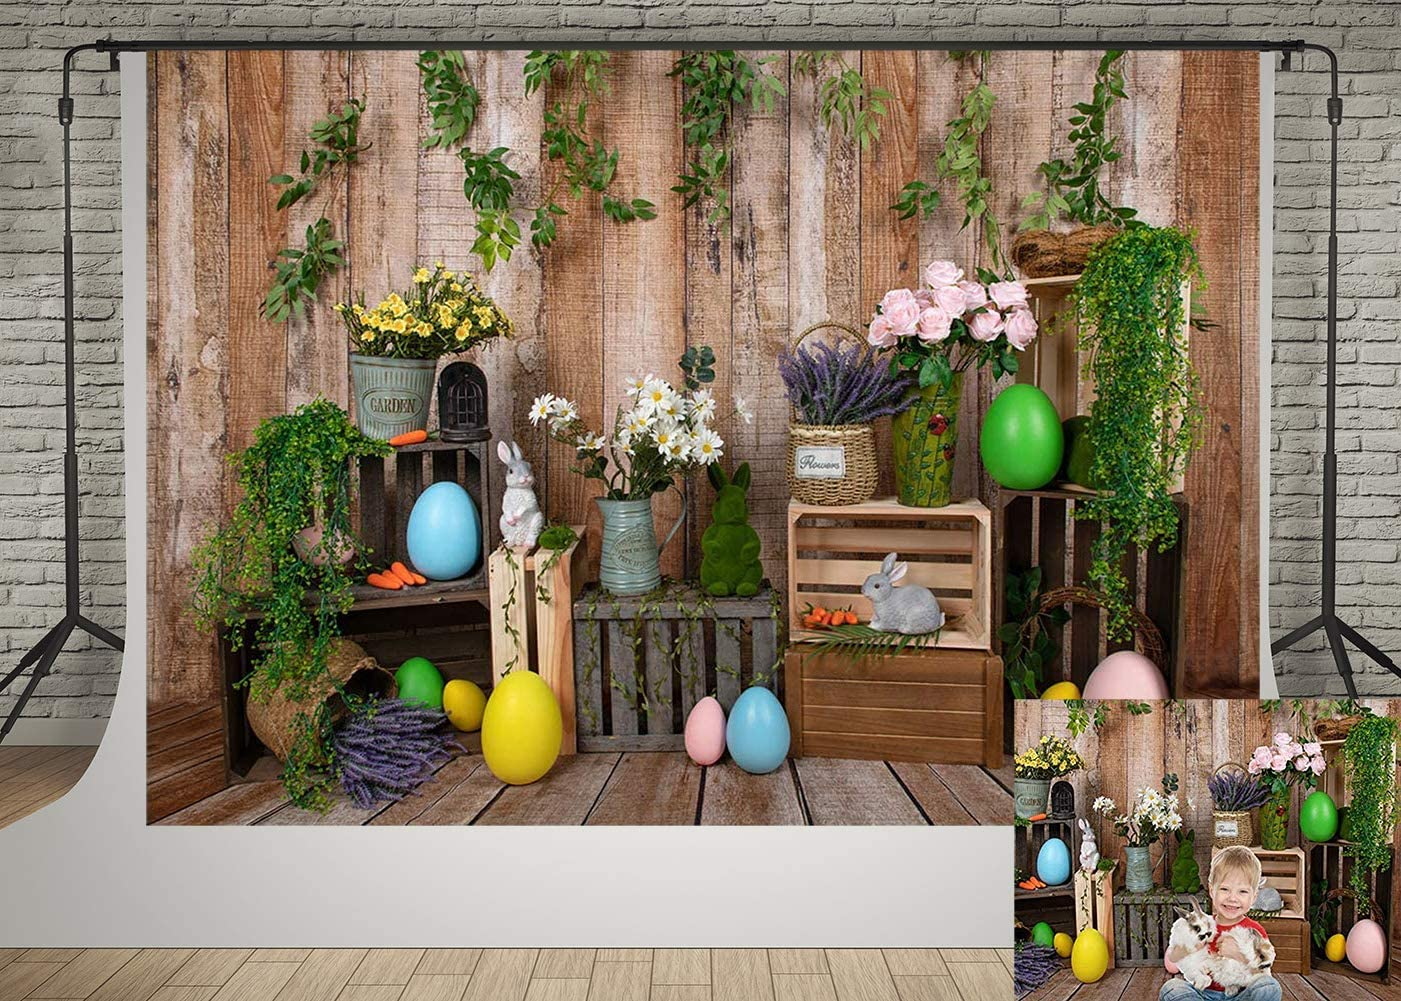 Kate 7x5ft Easter Day Photography Backdrops Wooden Wall and Wood Floor Rabbit Bunny Backgrounds Photo Studio Spring Garden Flowers Decor Backdrop Props